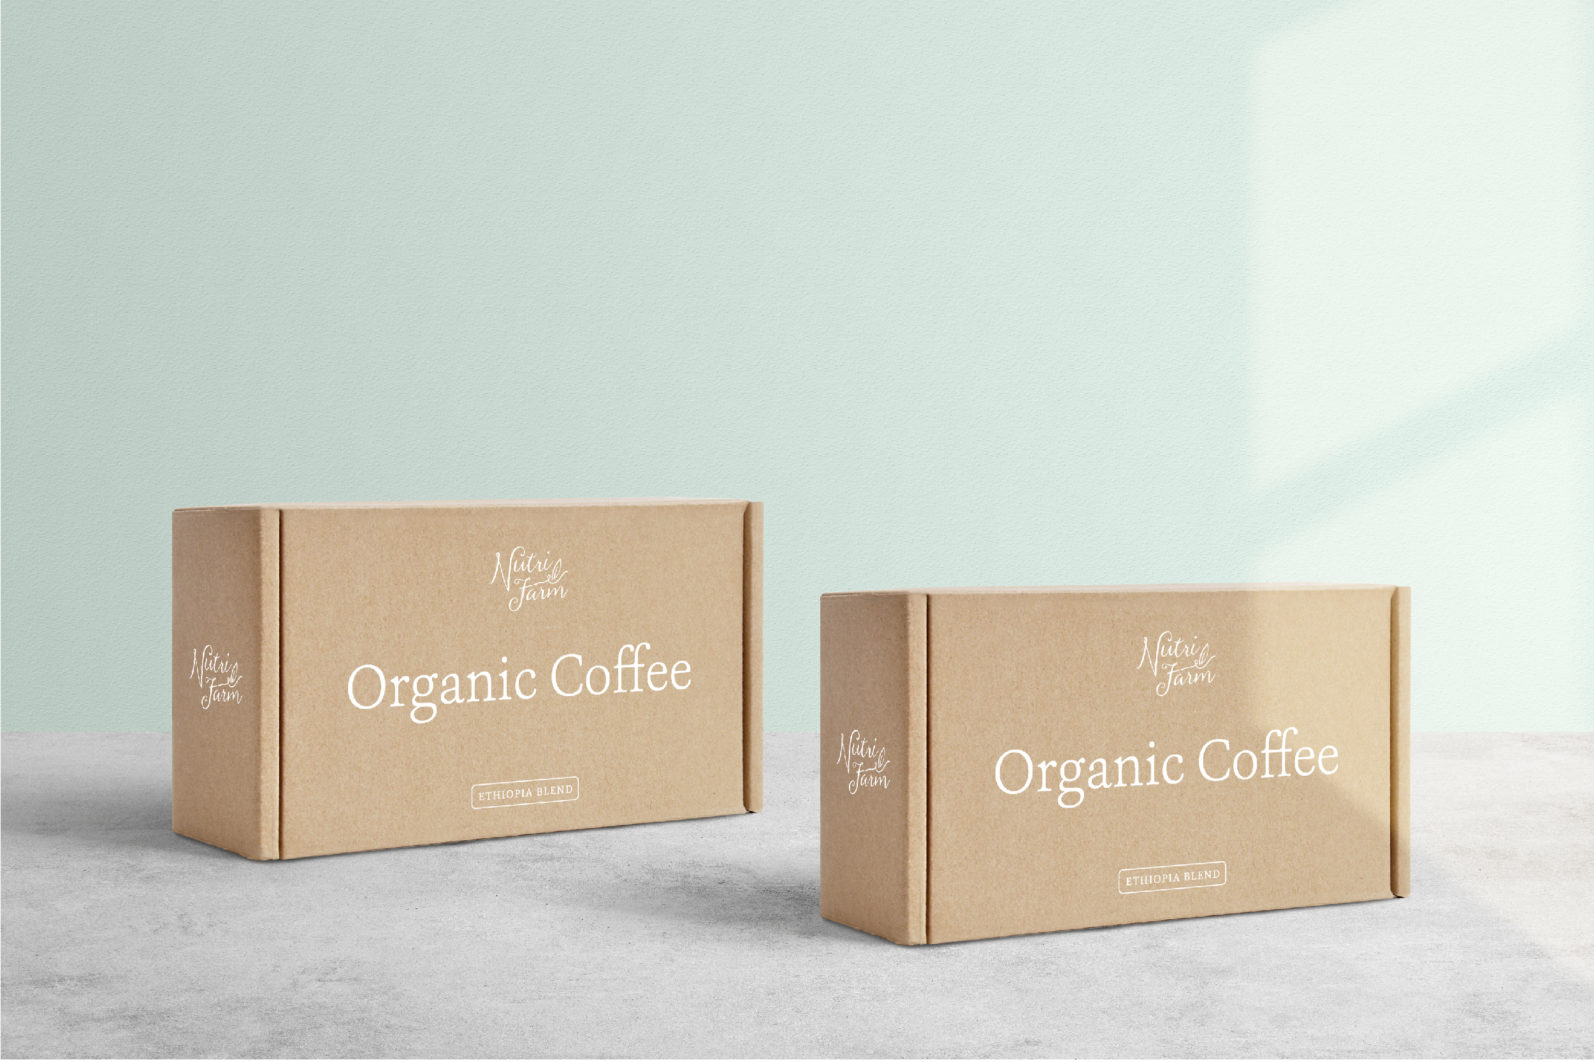 Package Mockup All Scenes - Min No.1 - Untitled 2 032 -